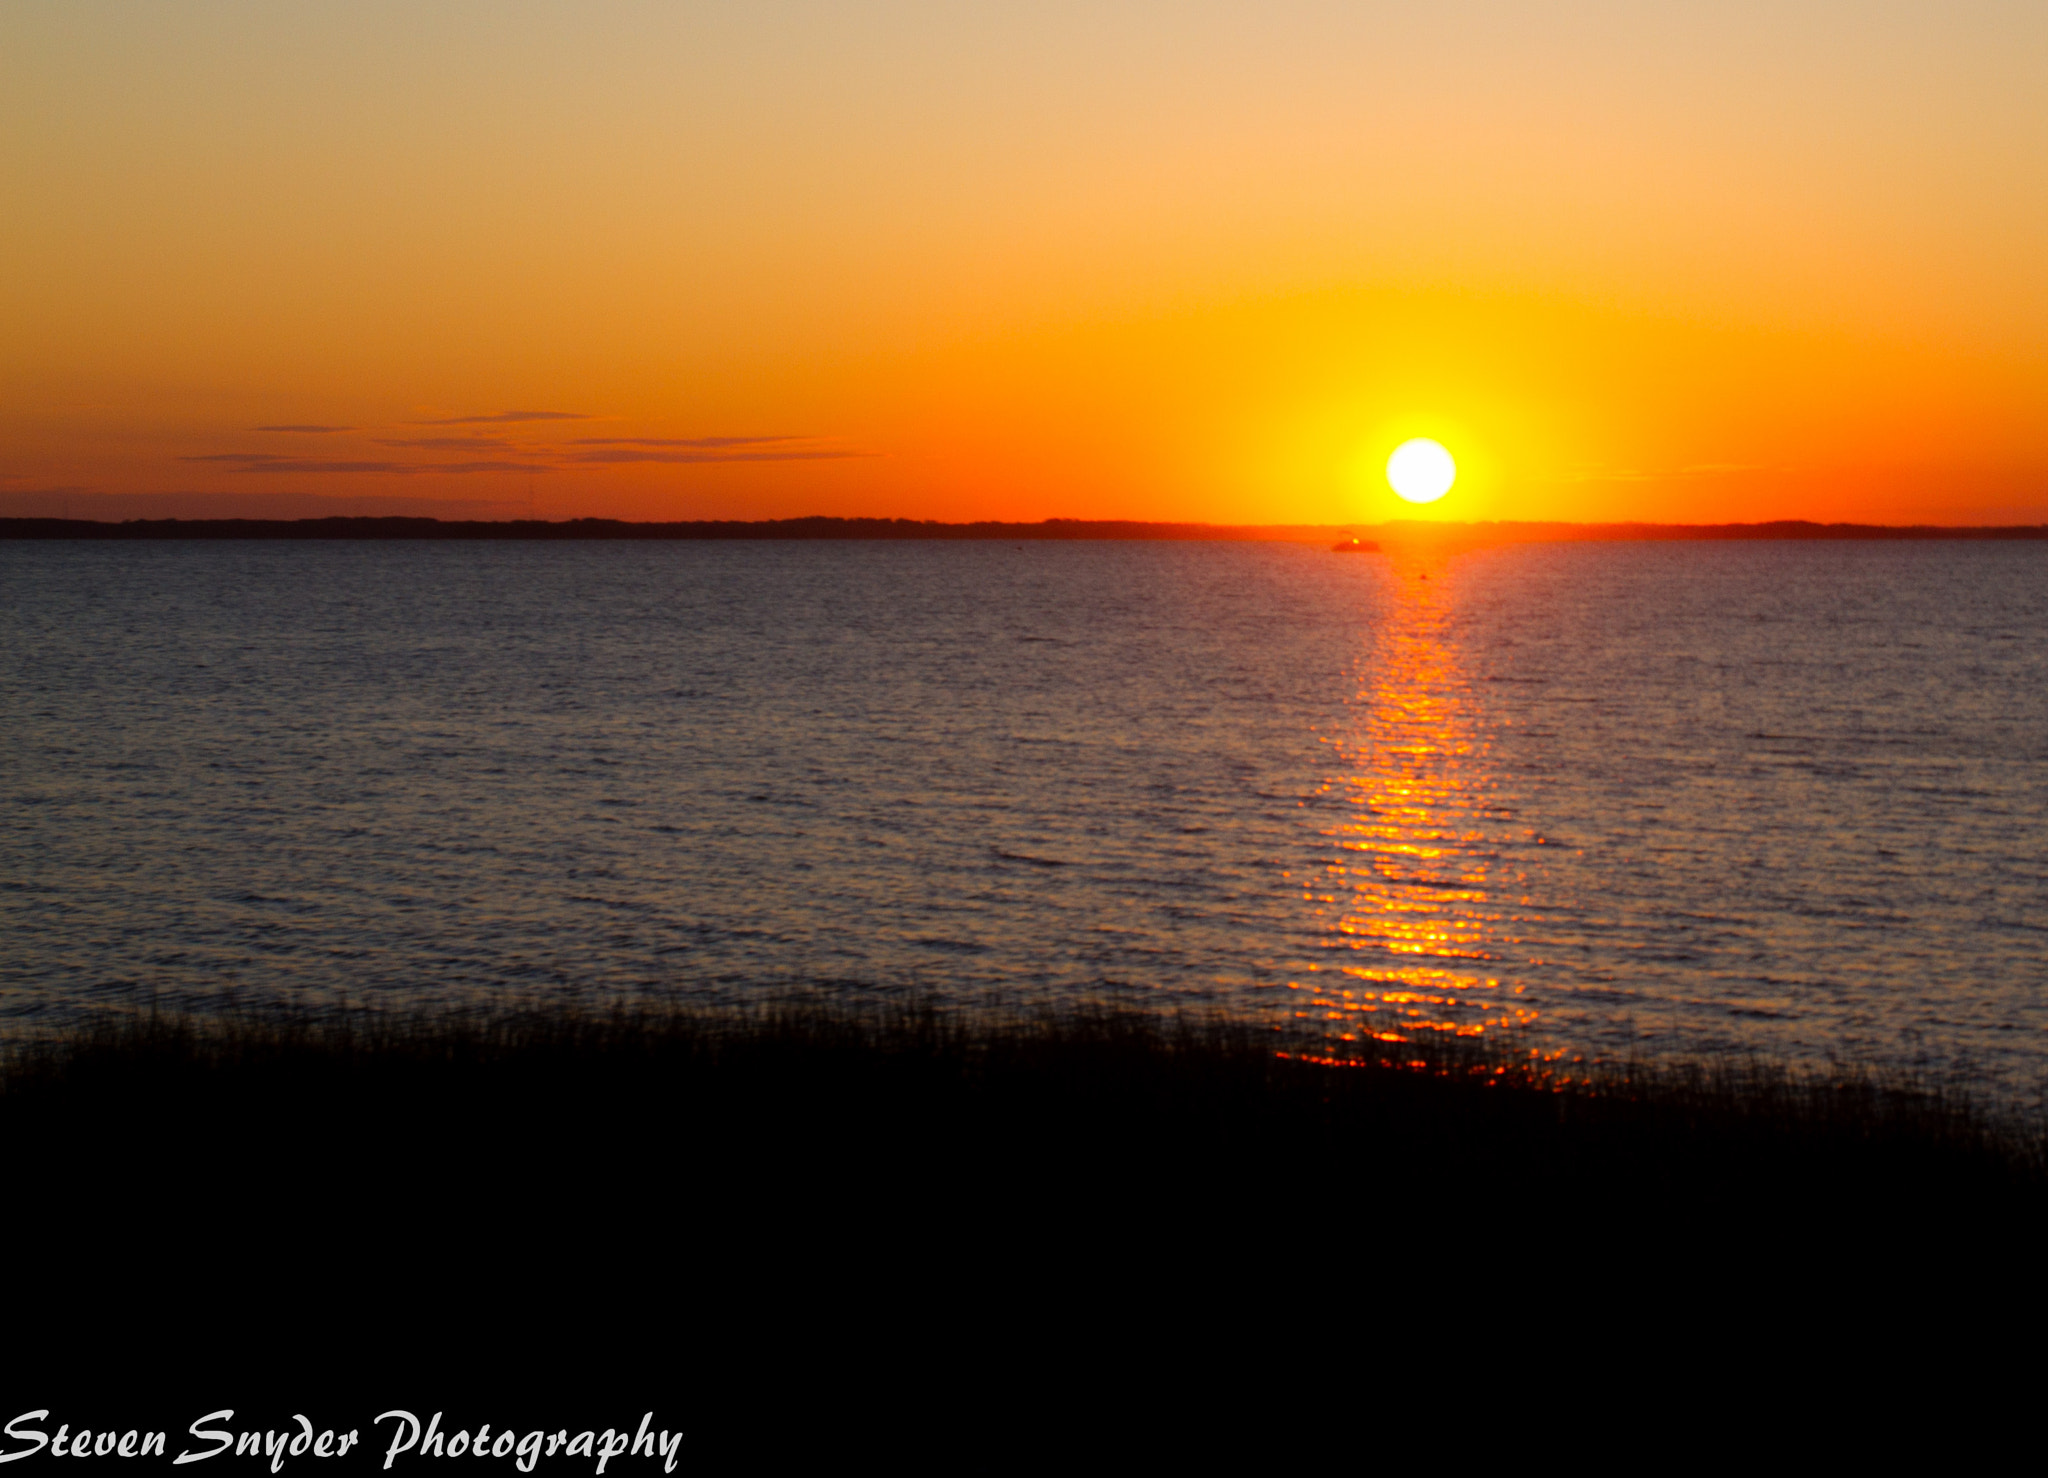 Photograph Sunset on the Sound by Steven Snyder on 500px